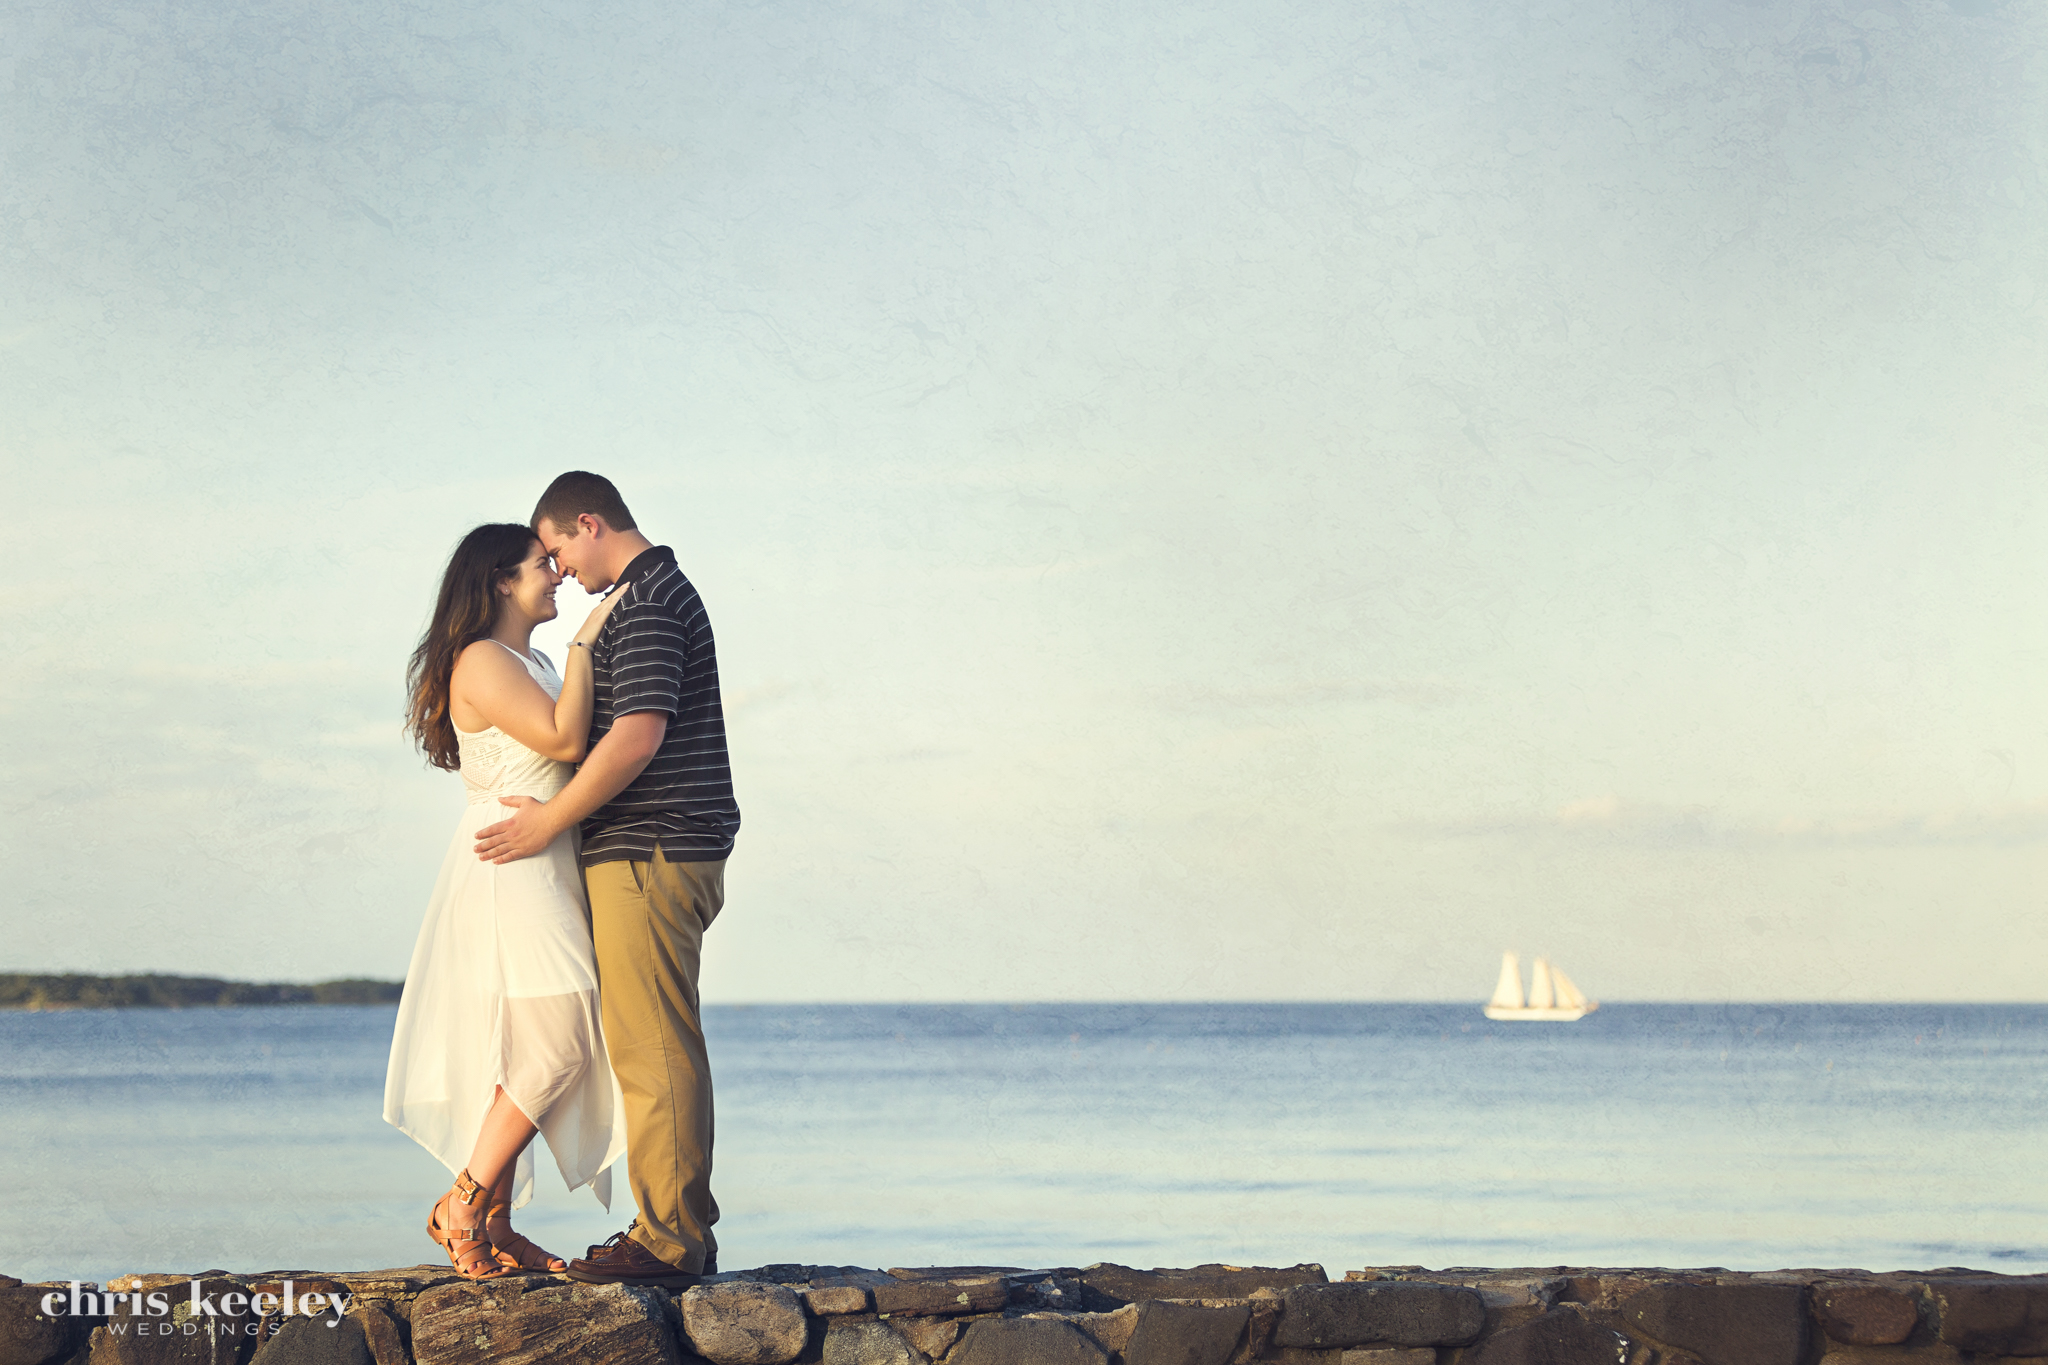 38-engagement-wedding-pictures-rye-new-hampshire-chris-keeley-weddings.jpg